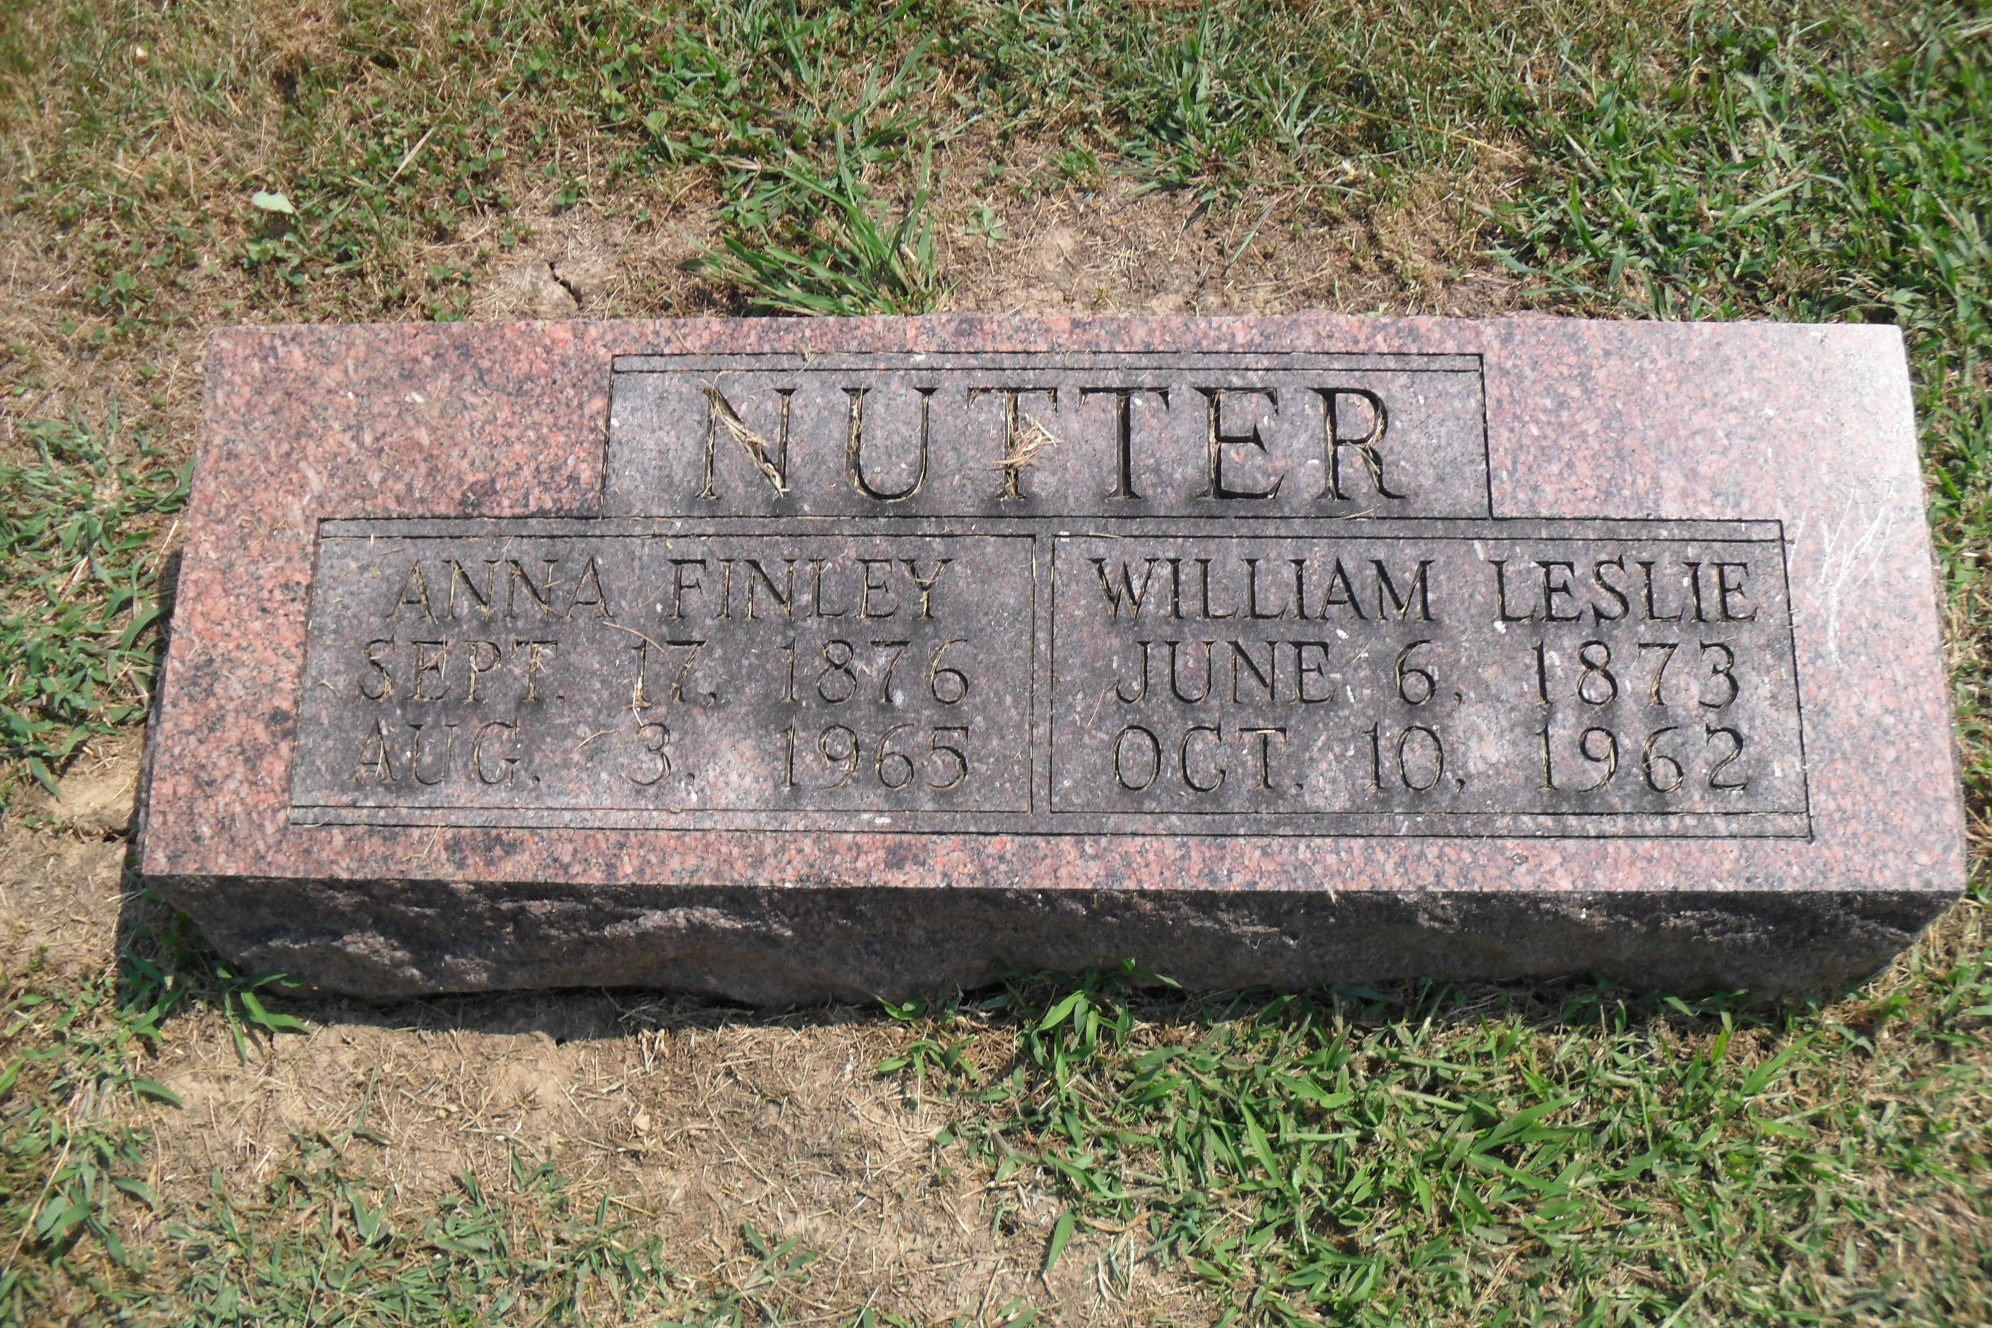 William F Nutter